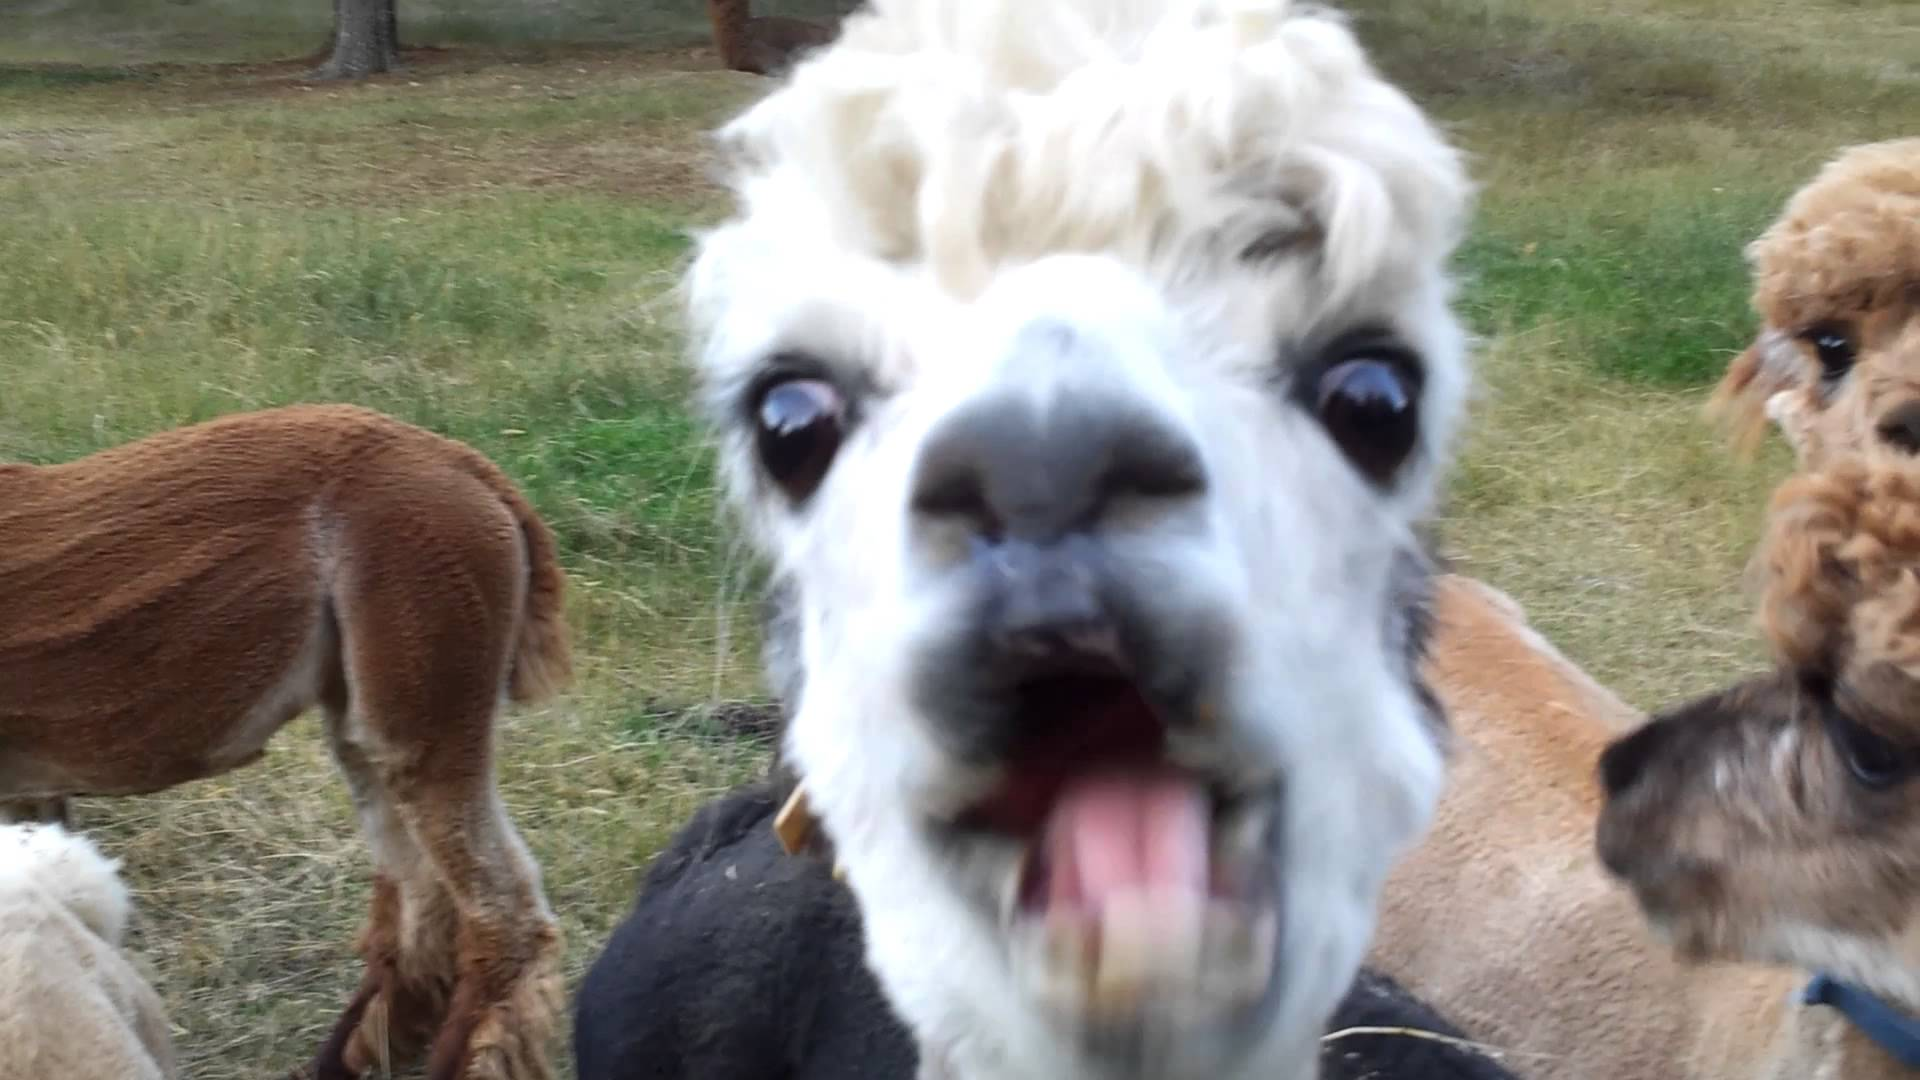 Alpacas trying to eat apples.